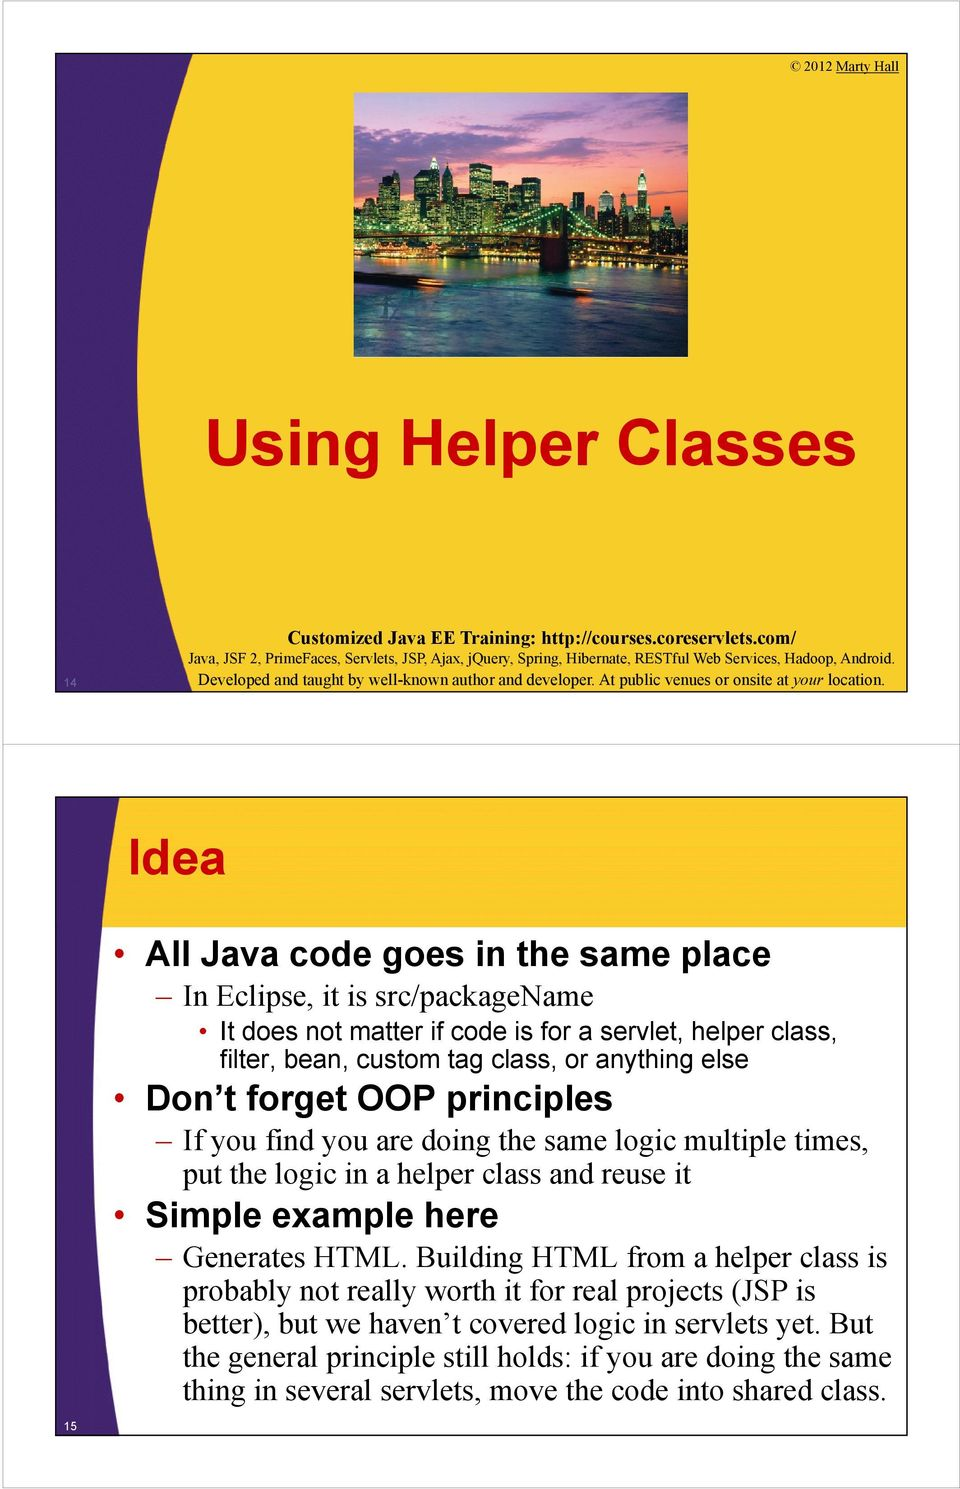 a helper class and reuse it Simple example here Generates HTML.